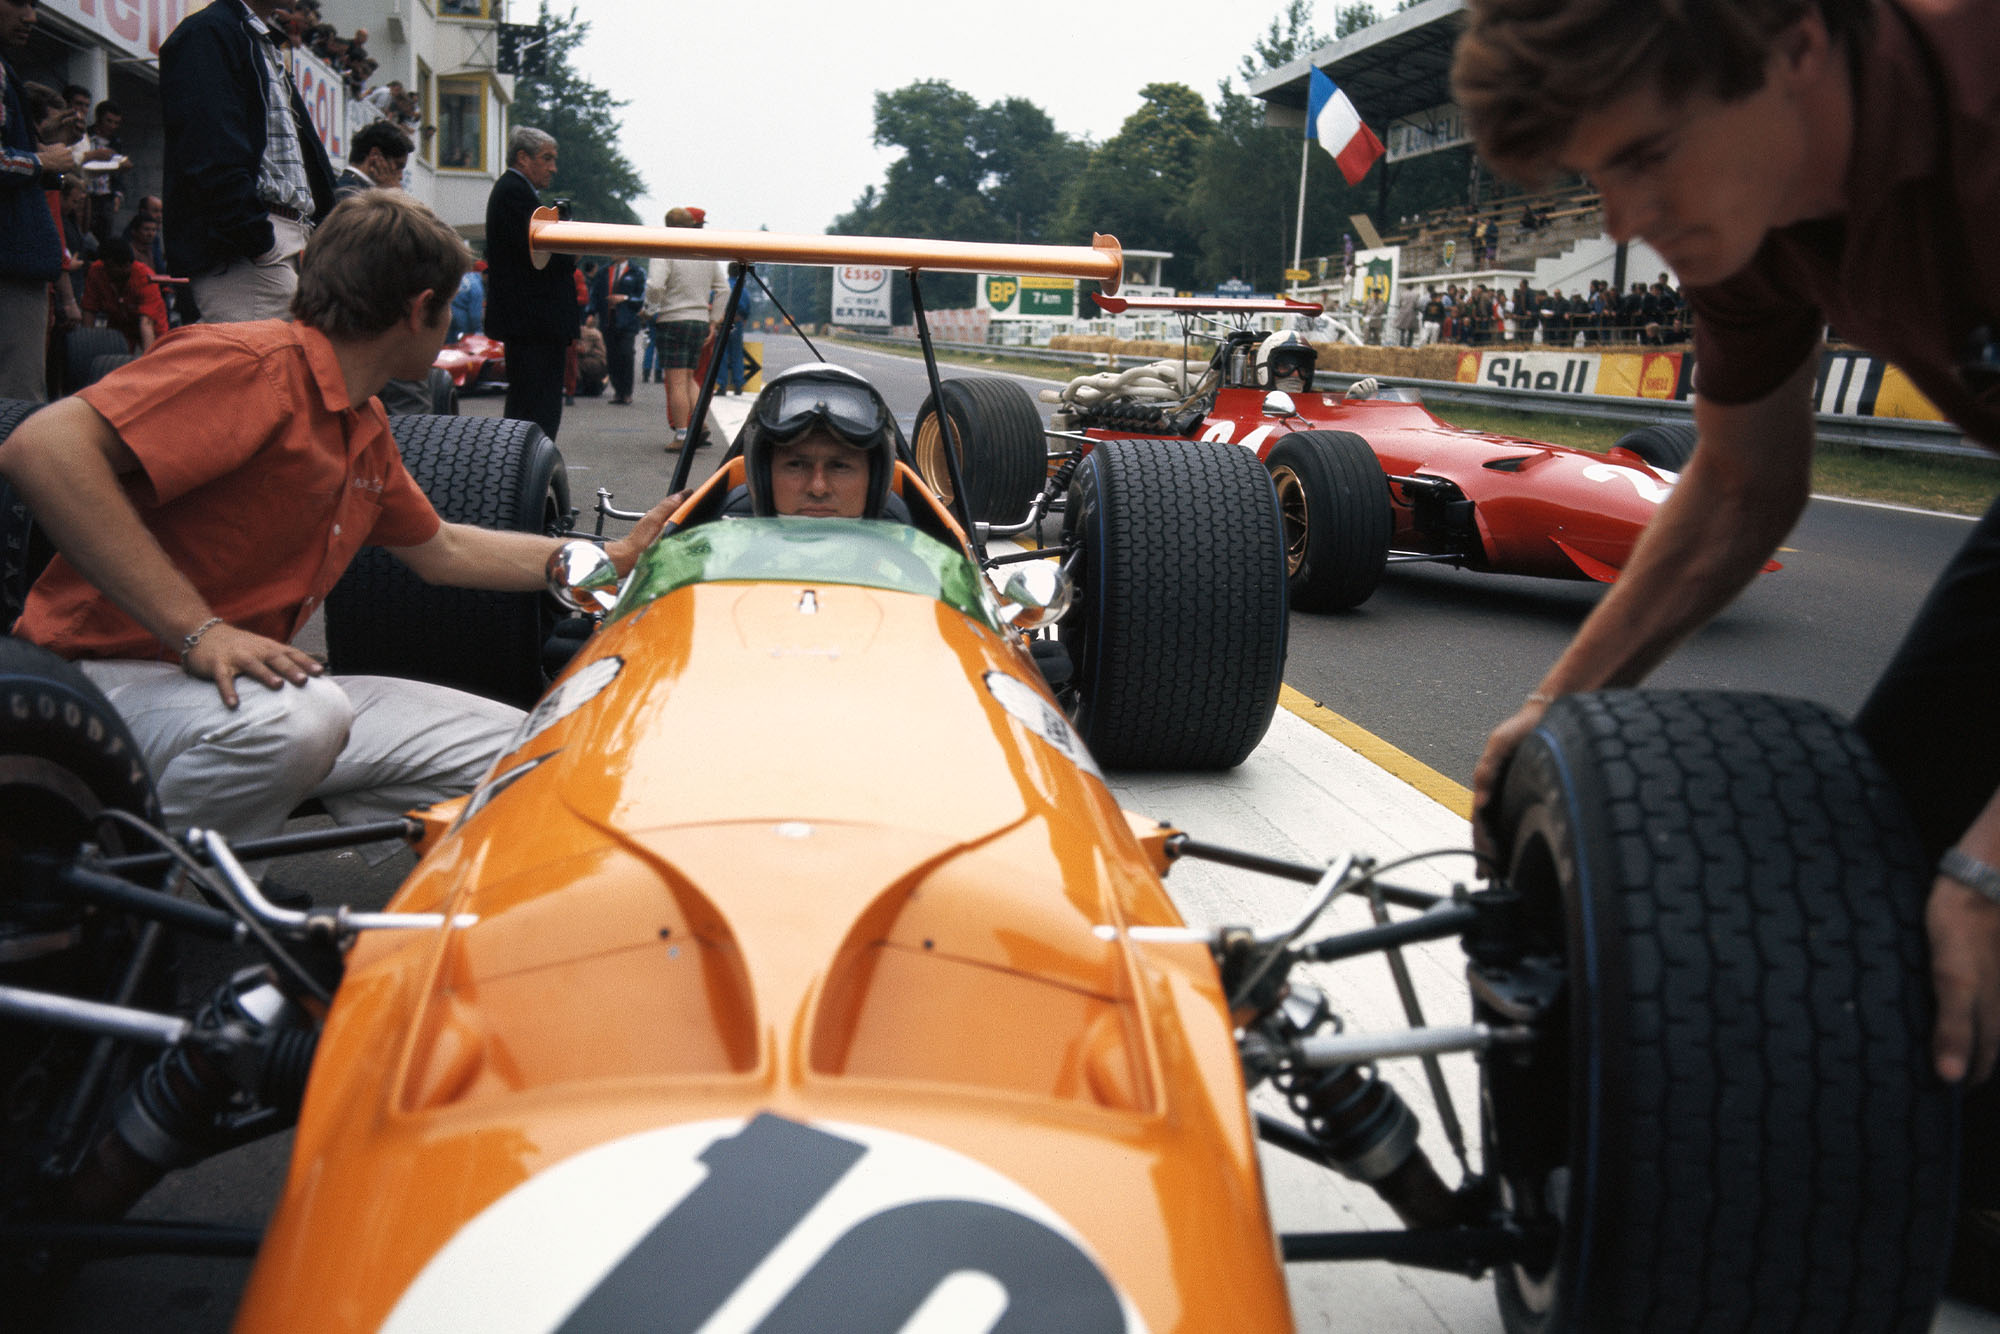 Bruce McLaren, McLaren M7A Ford, getting new tyres while Chris Amon, Ferrari 312, leaves the pits.